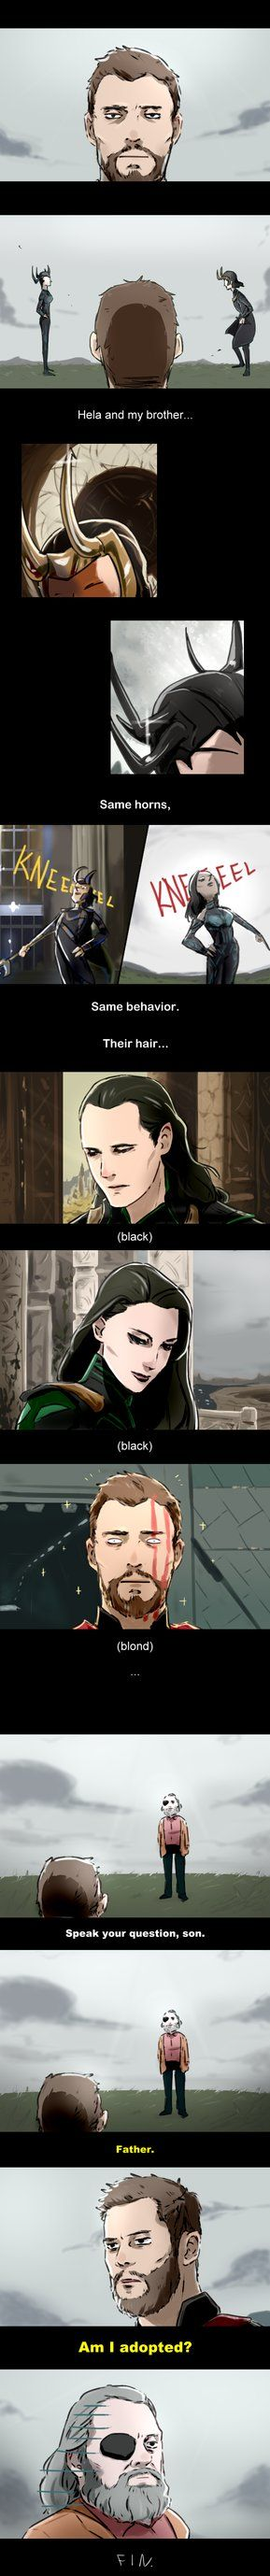 Fan comic of Thor: Ragnarok. Thor was confused about the fact that how similar that Loki and Hela are. The horns, the act, the hair... Don't be sad, Thor Odinson, at least you got the crown. Here a...